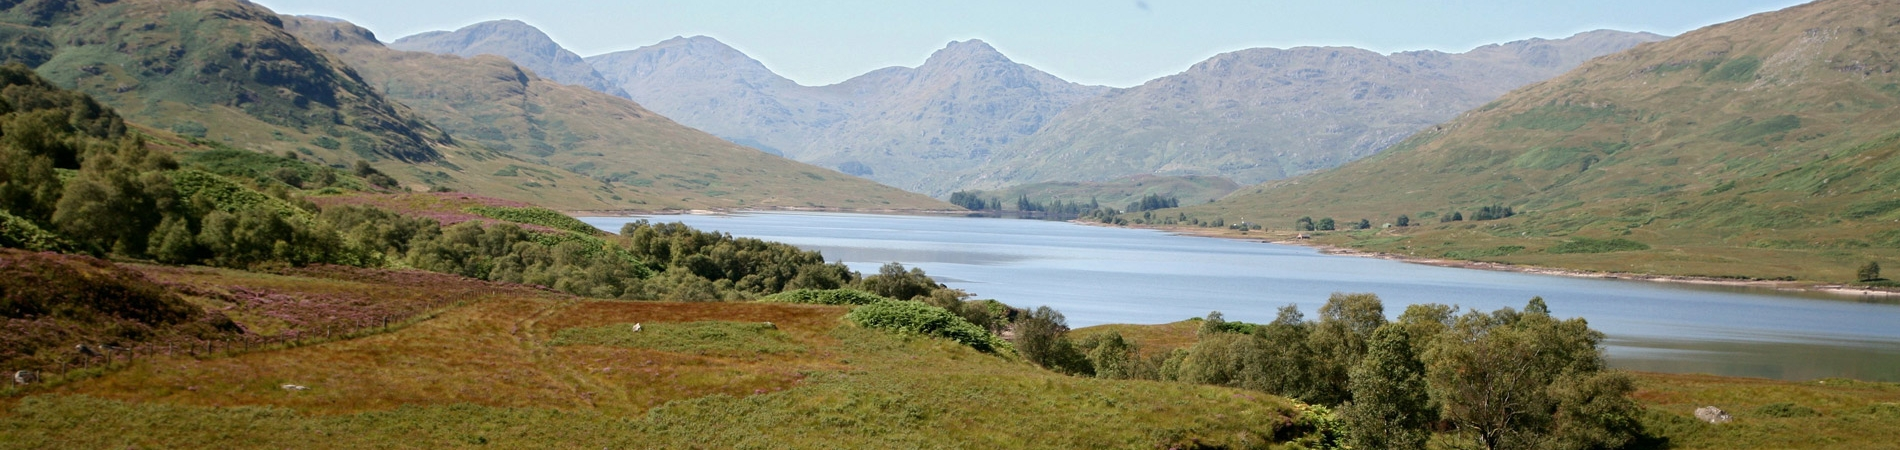 UK coach holidays with Lochs and Glens